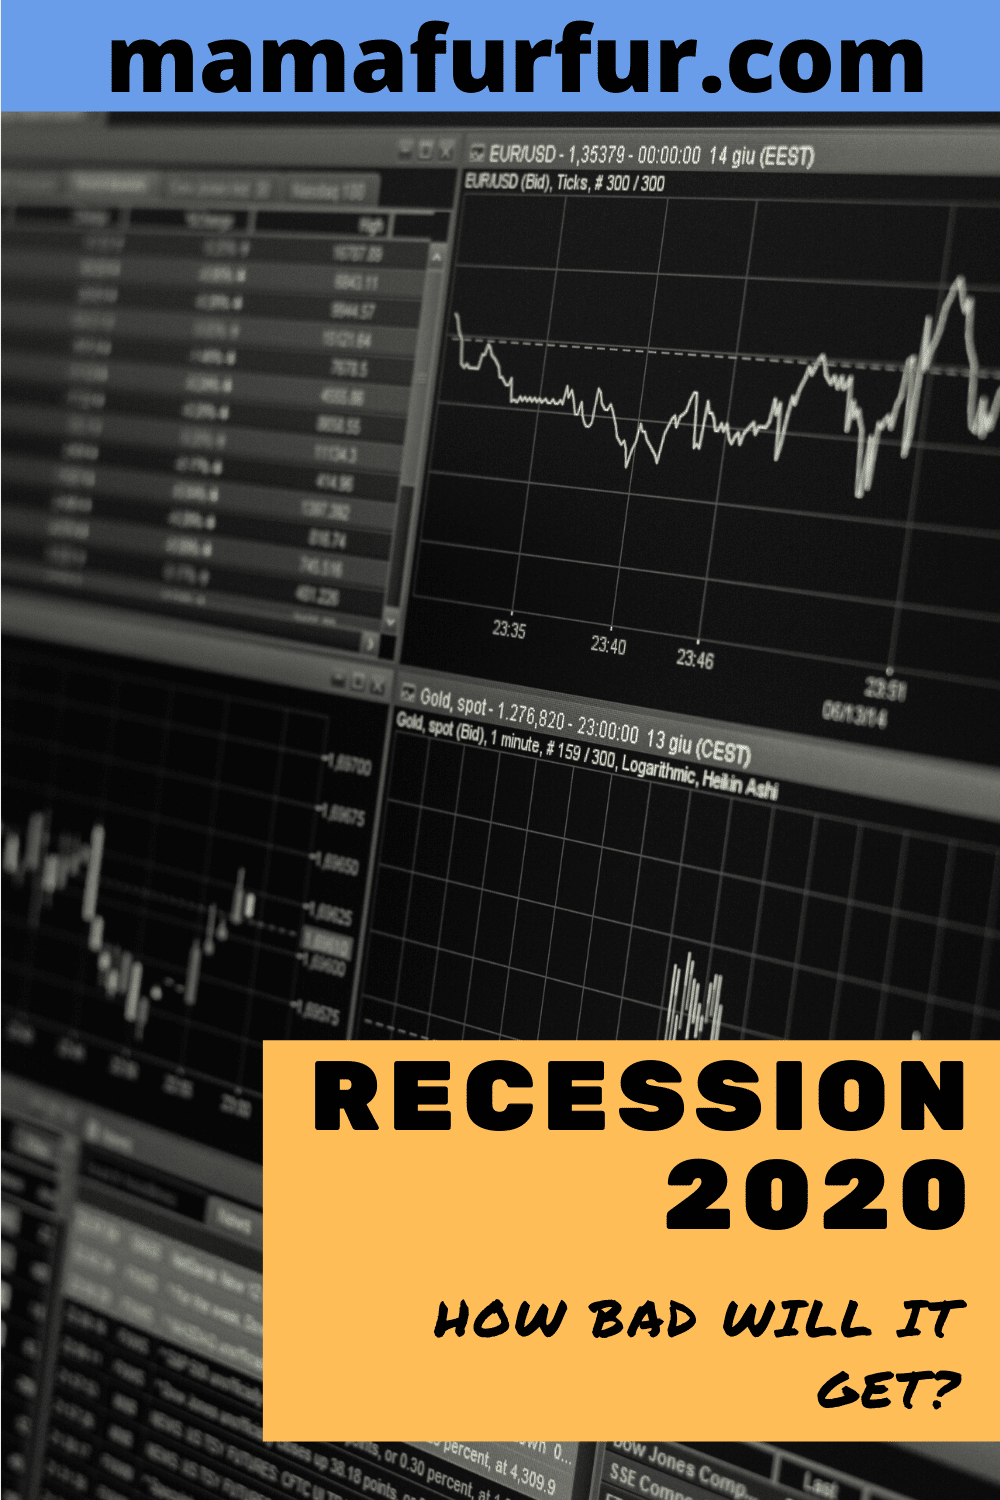 Recession 2020 - How BAD will it get? How to prepare for a Recession this year